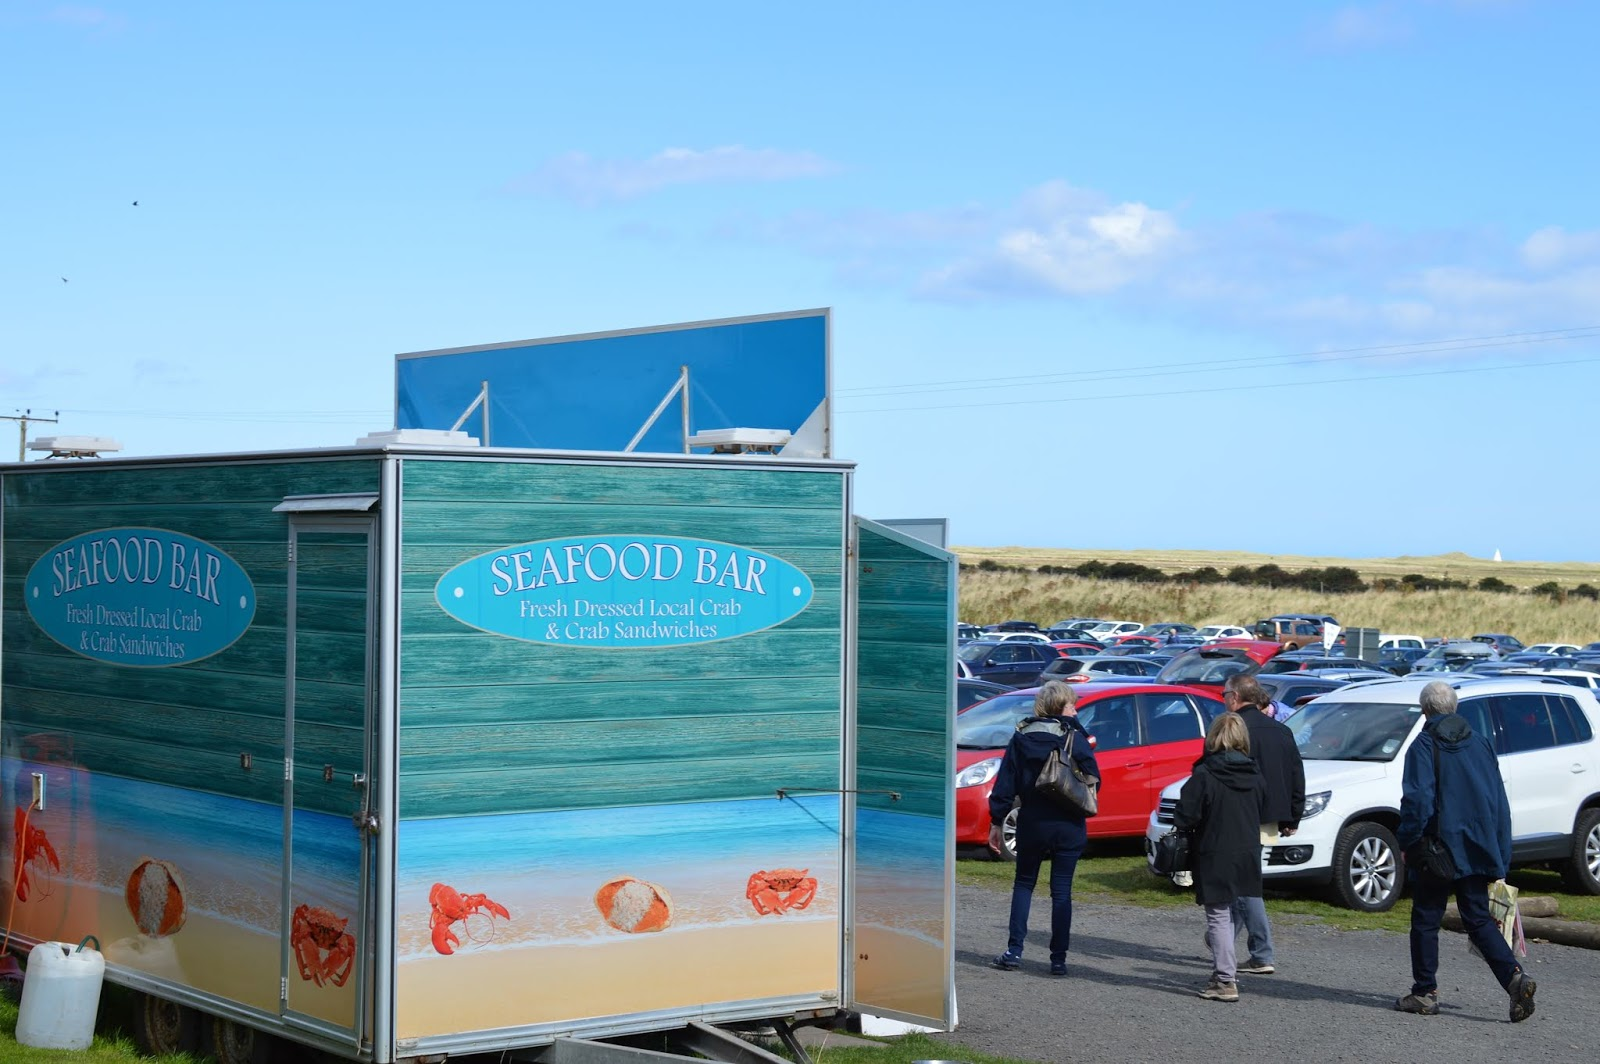 The Holy Island of Lindisfarne, Northumberland - what to see and do during a half day visit - seafood bar holy island car park